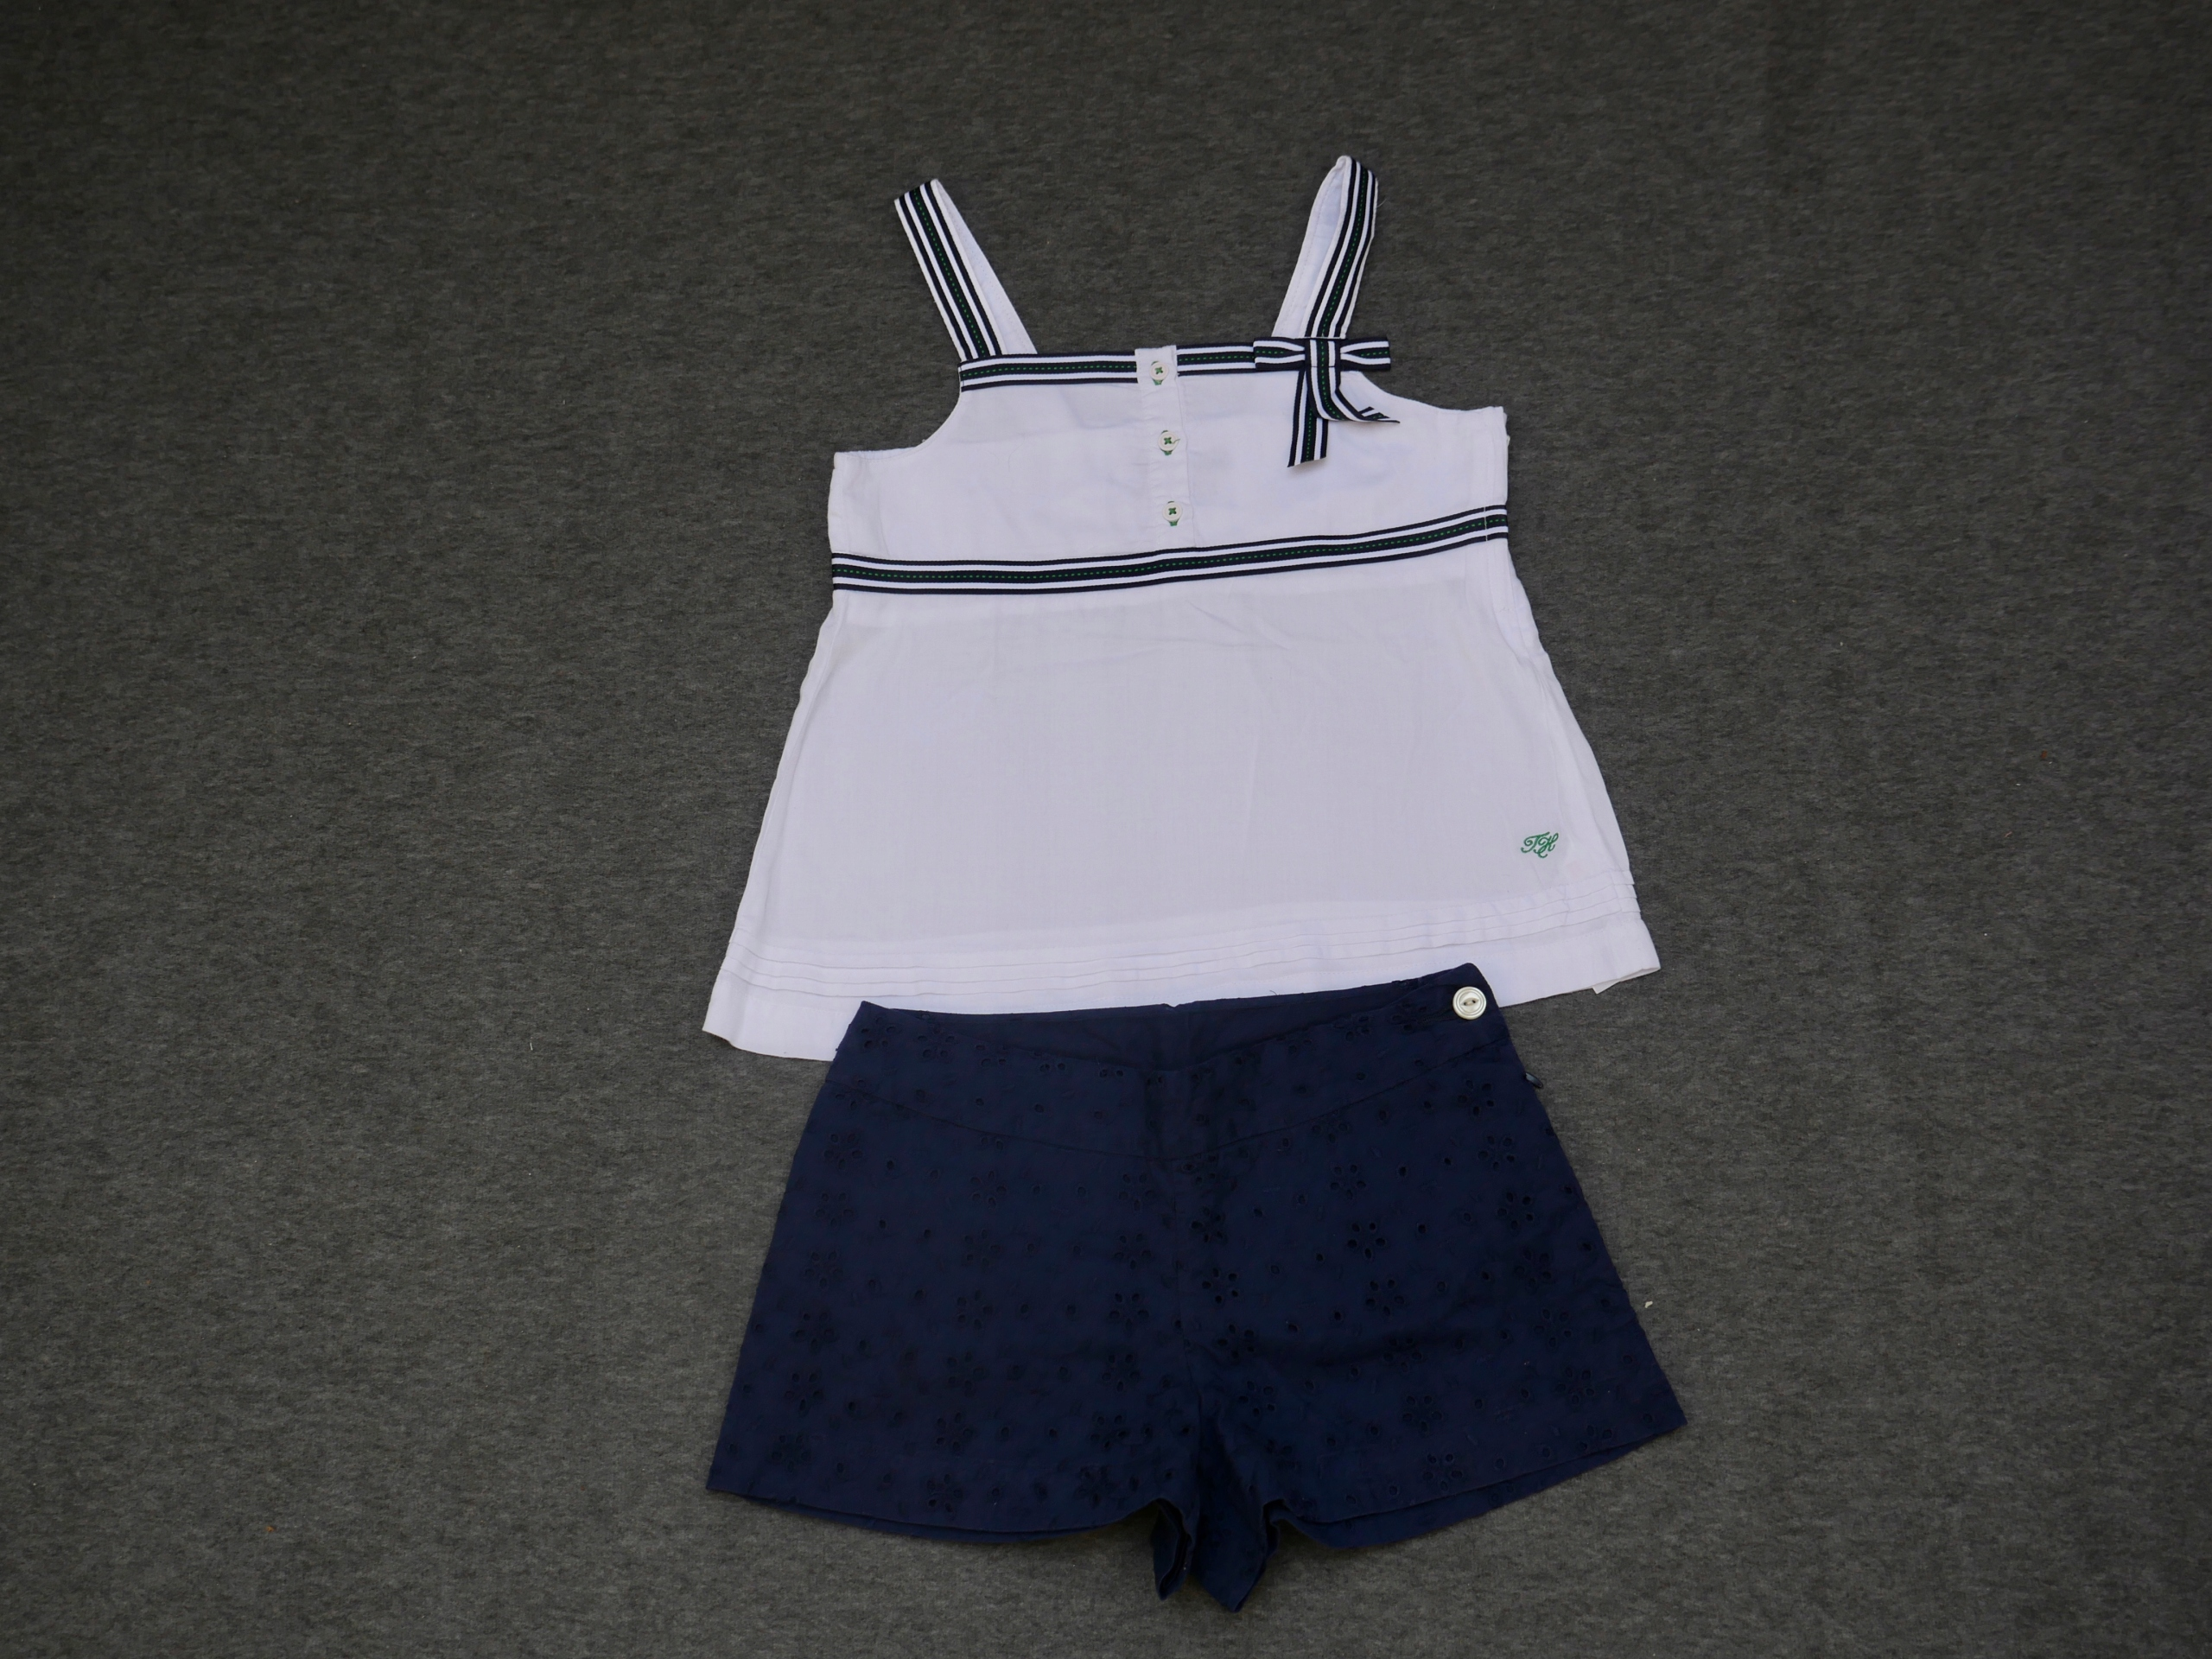 HILFIGER I LAUREN top i szorty 7 - 8 T na 128 cm